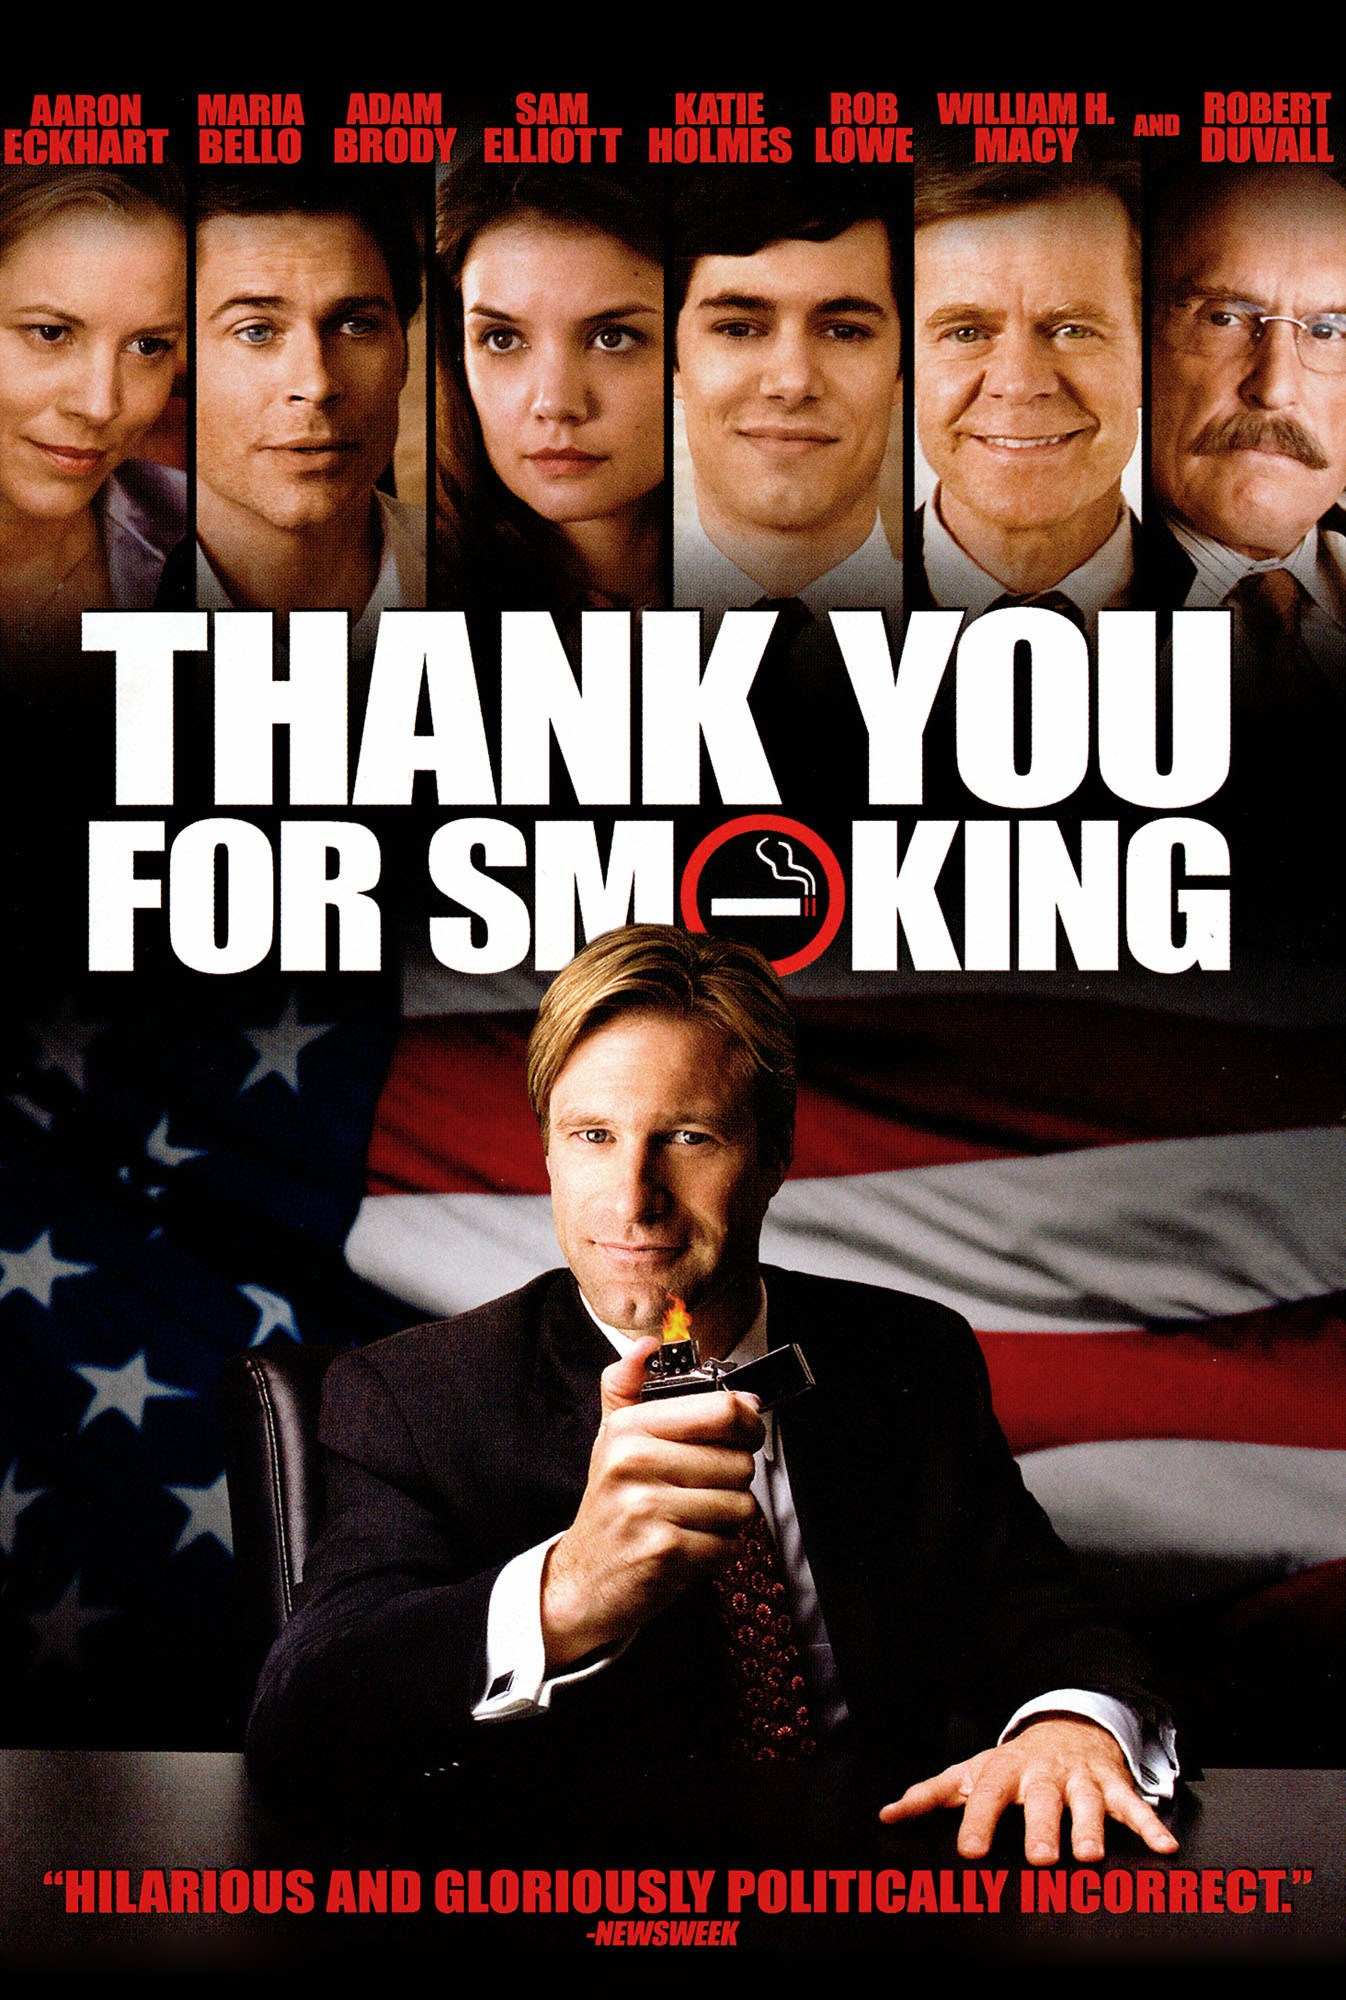 an analysis of thank you for smoking an informative film Watch a cinematic movie and critique the business ethics dilemmas the movie i chose was thank you for smoking staring aaron eckhart (nick naylor) as a.